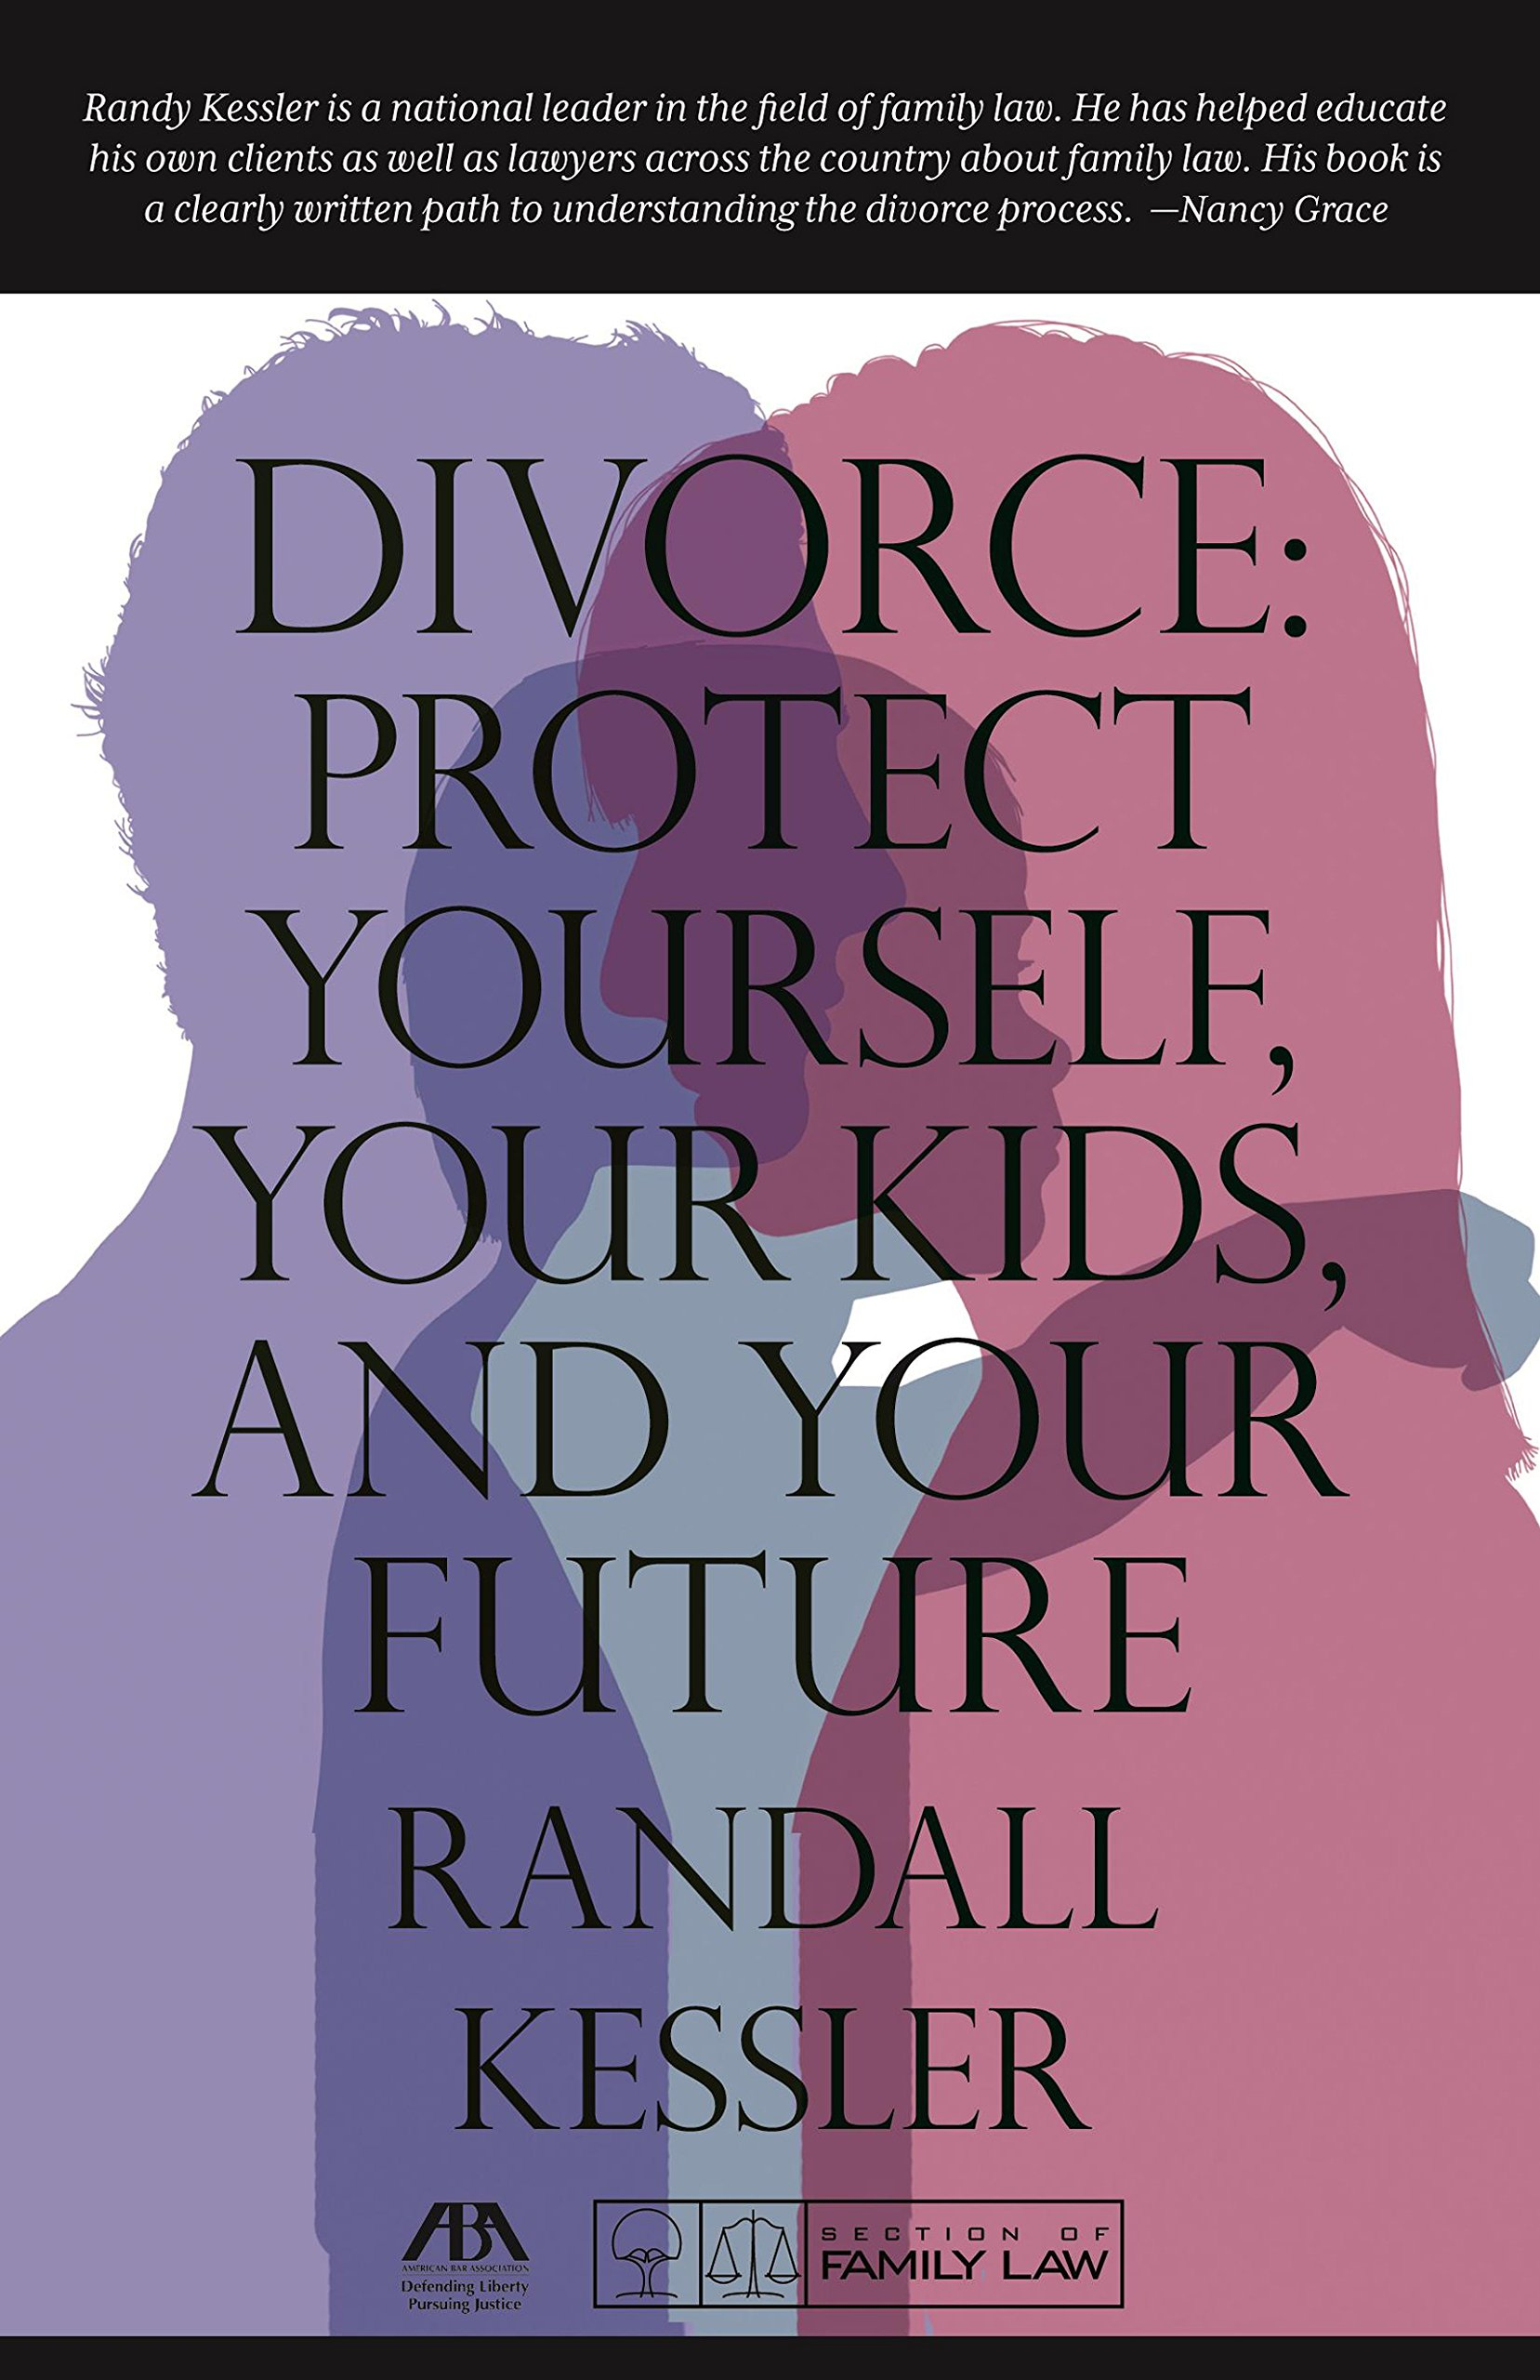 Divorce protect yourself your kids and your future randall divorce protect yourself your kids and your future randall kessler 9781627225731 amazon books solutioingenieria Gallery